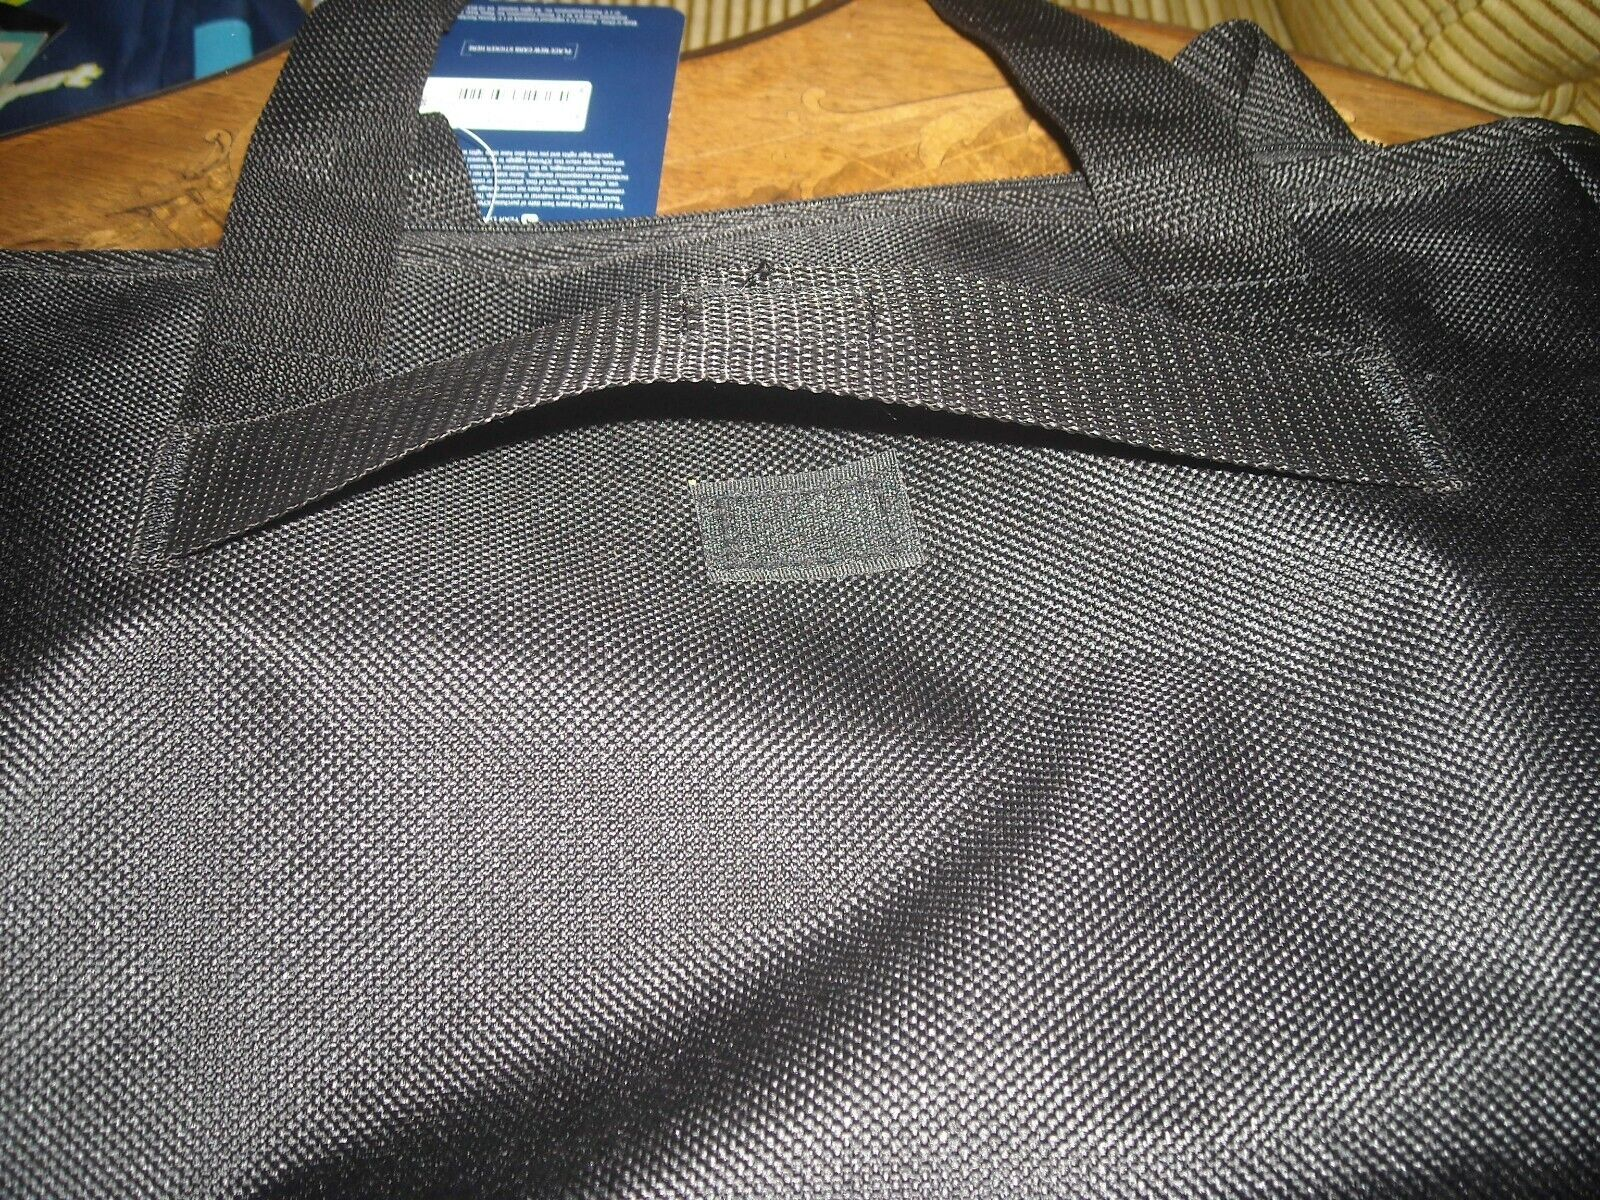 Protocol Centennial 3.0 19 Tote New With Tags Black - $30.00